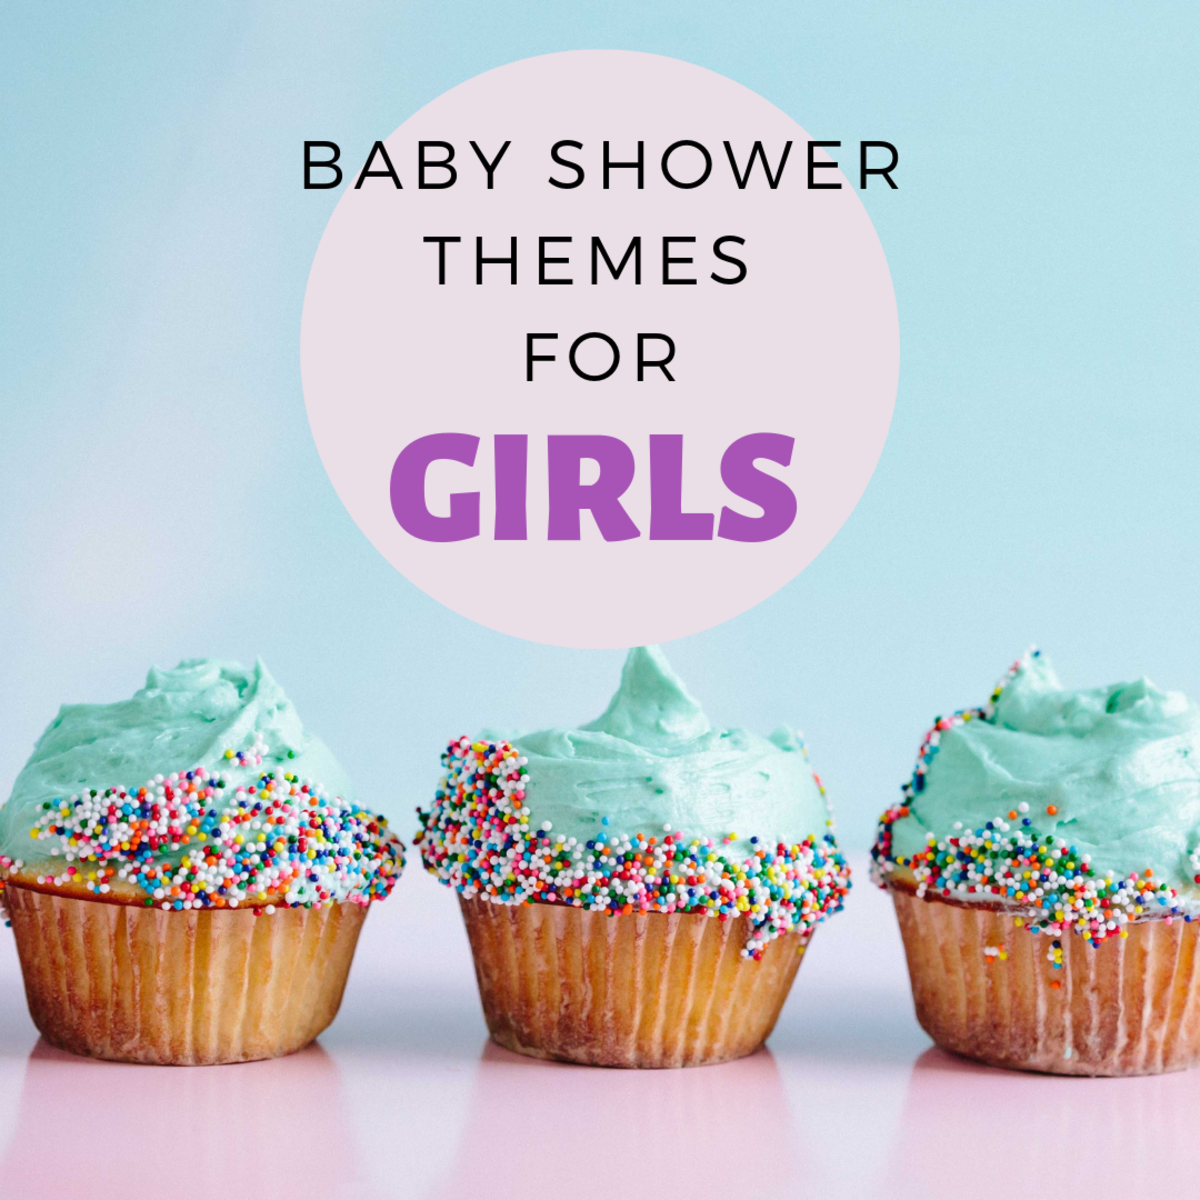 100 Baby Shower Party Themes for Girls